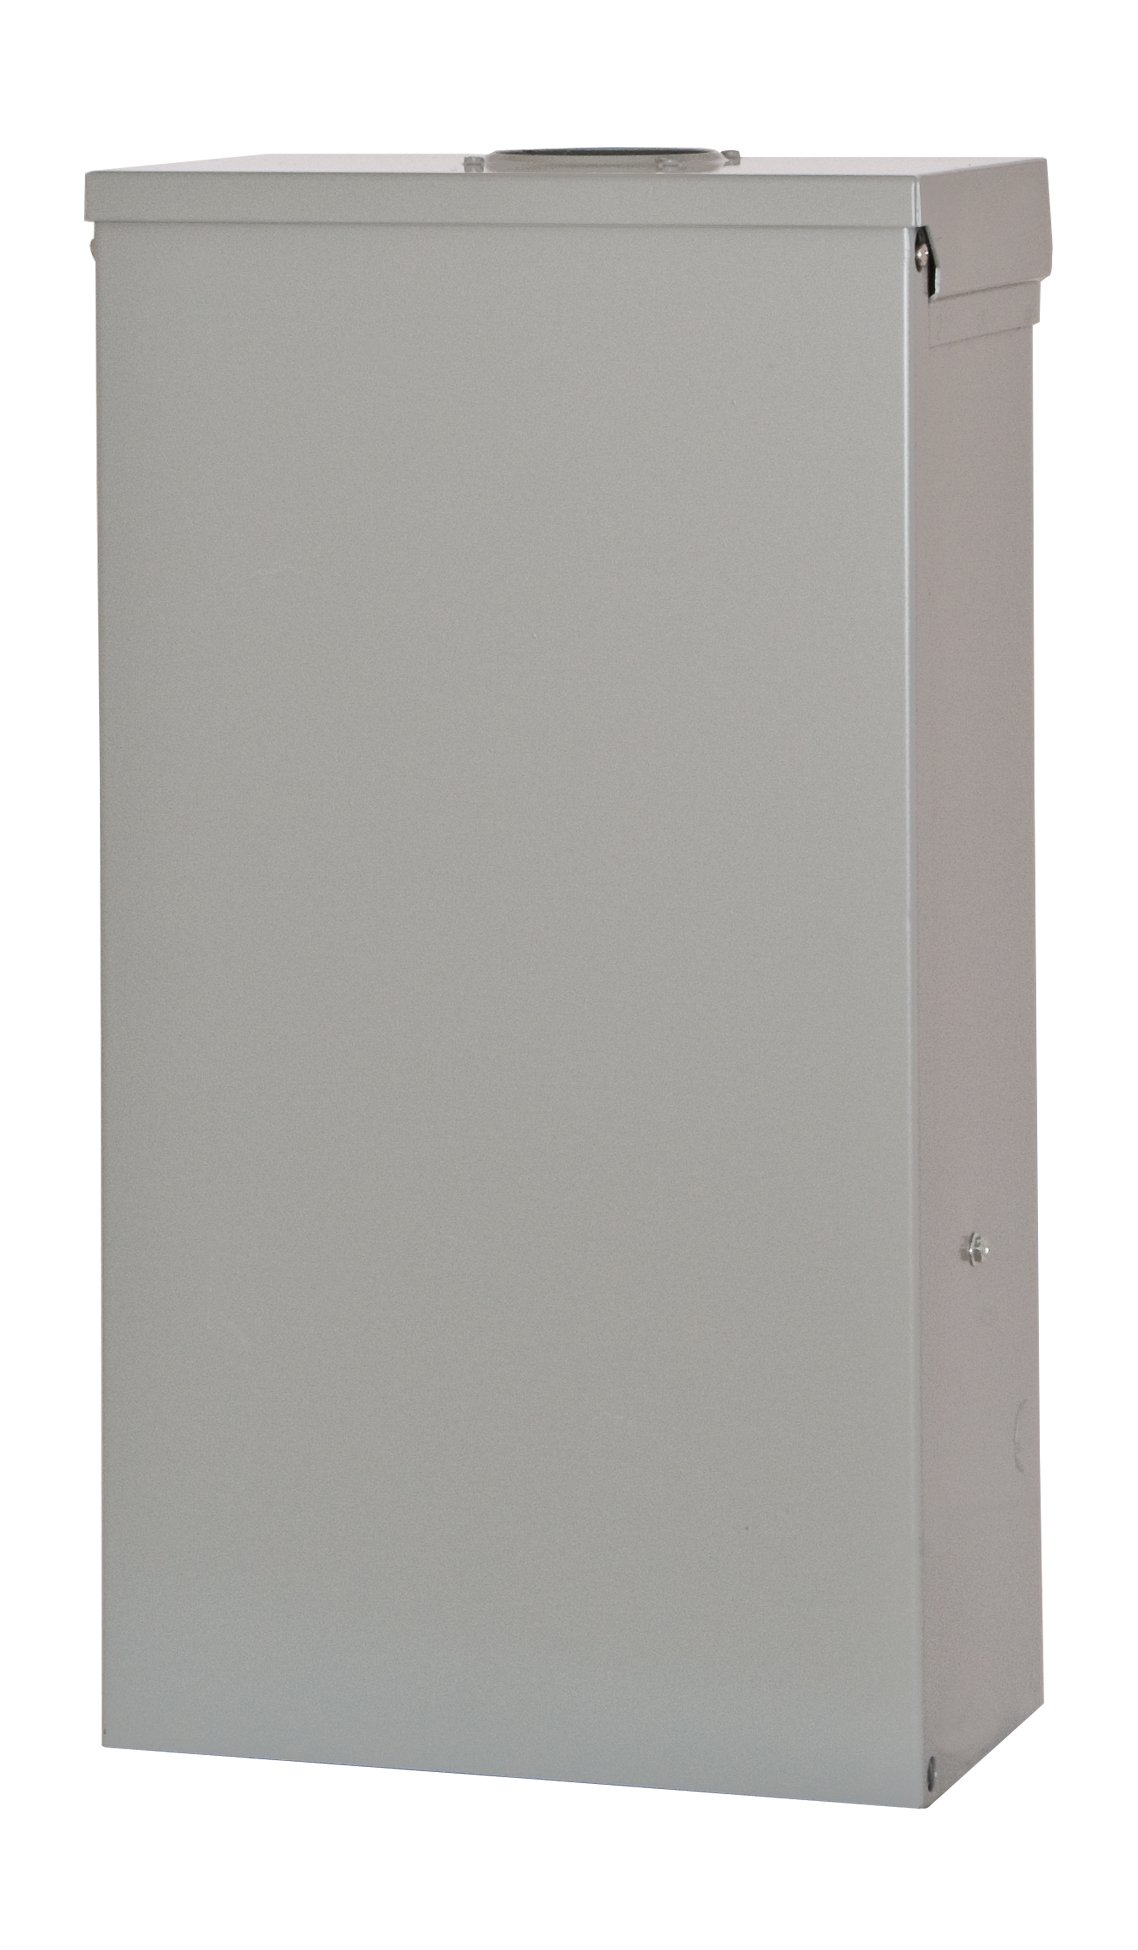 Siemens TL17US Talon Temporary Power Outlet Panel with a 20 and 50-Amp Receptacle Installed, Unmetered